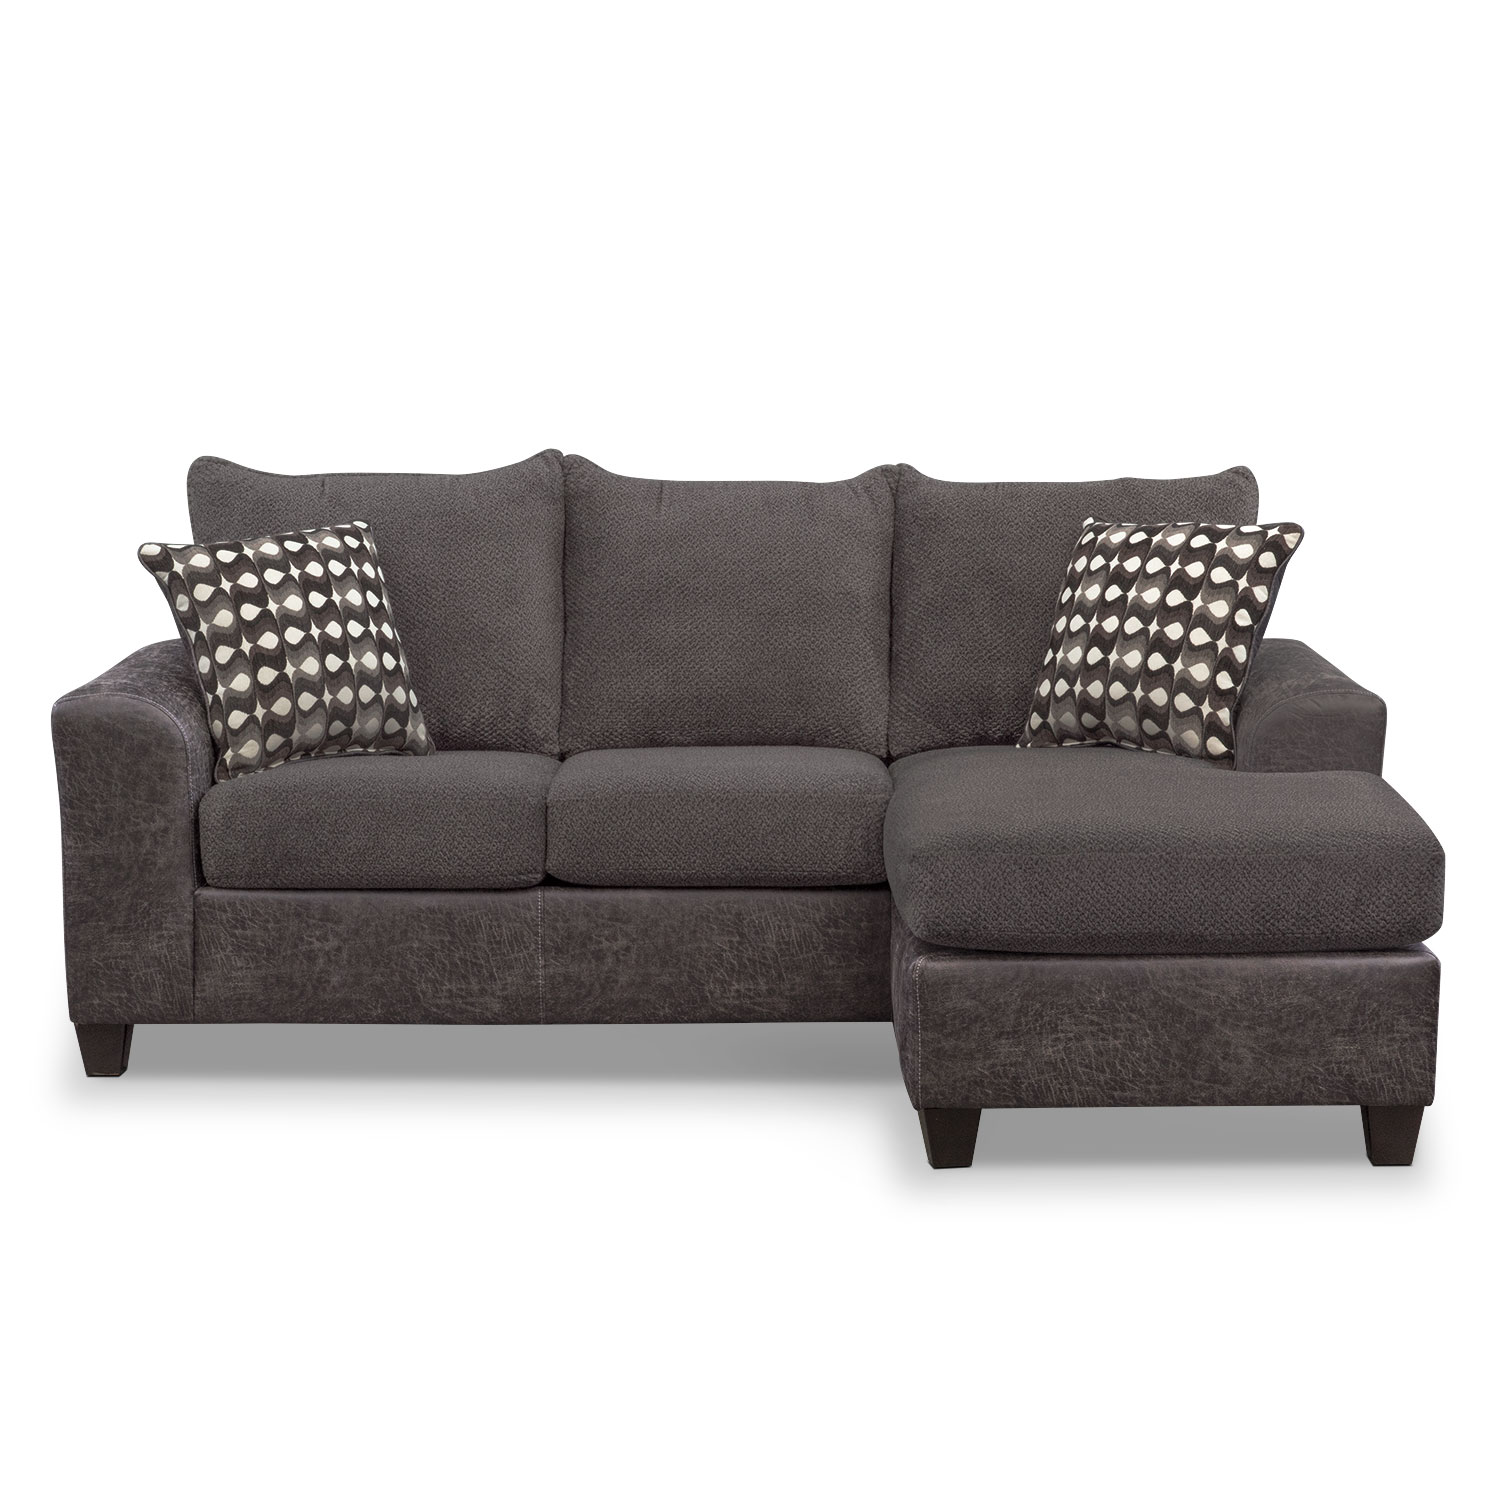 chaise couch brando sofa with chaise - smoke GRUBXYJ